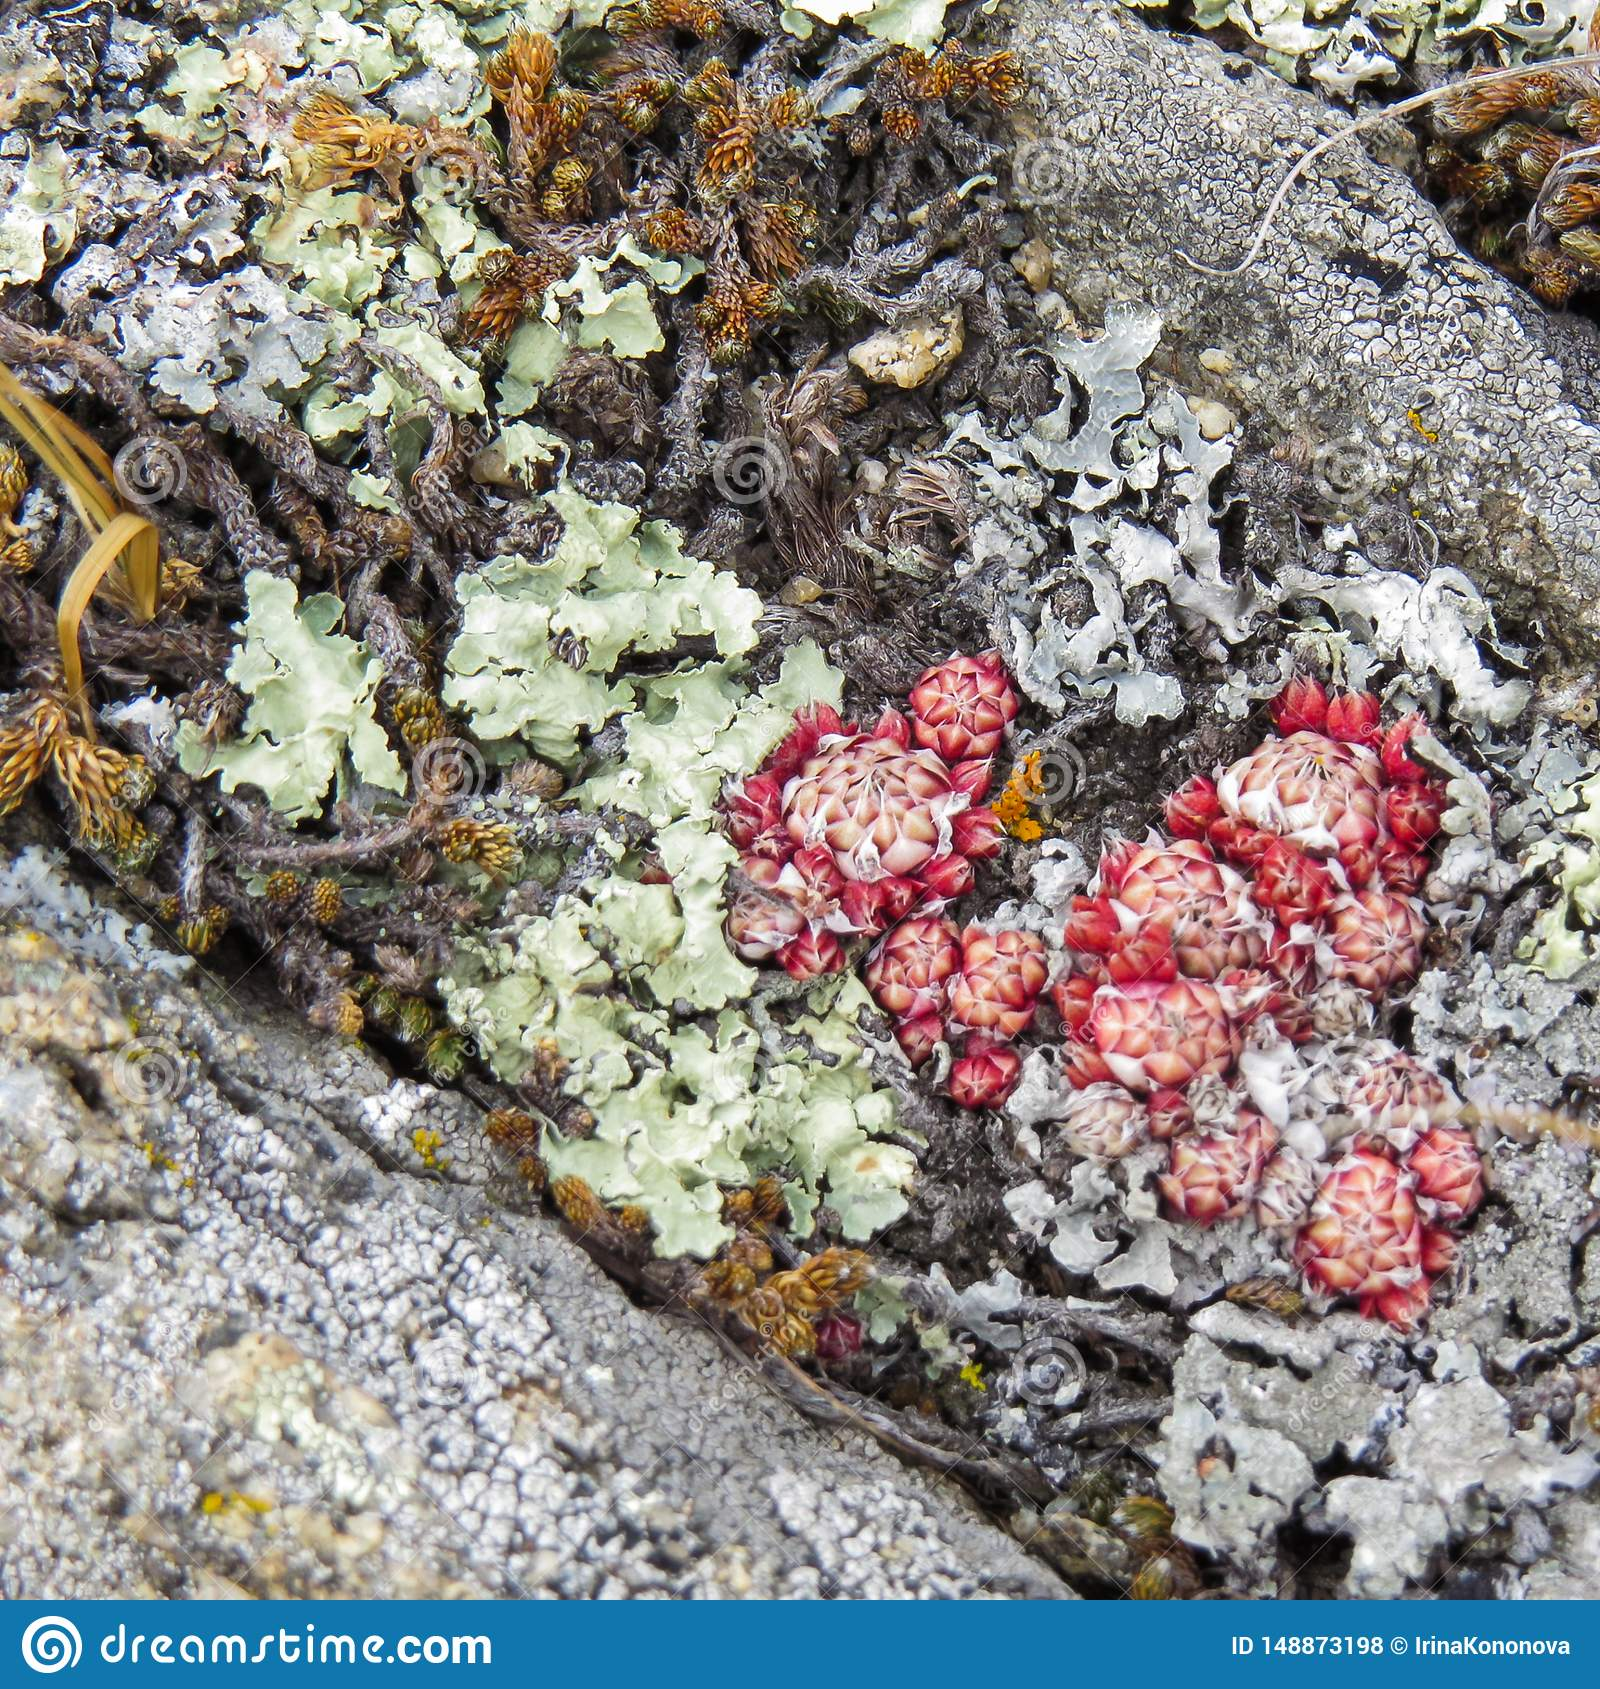 Green, red, yellow, gray lichens among the stones